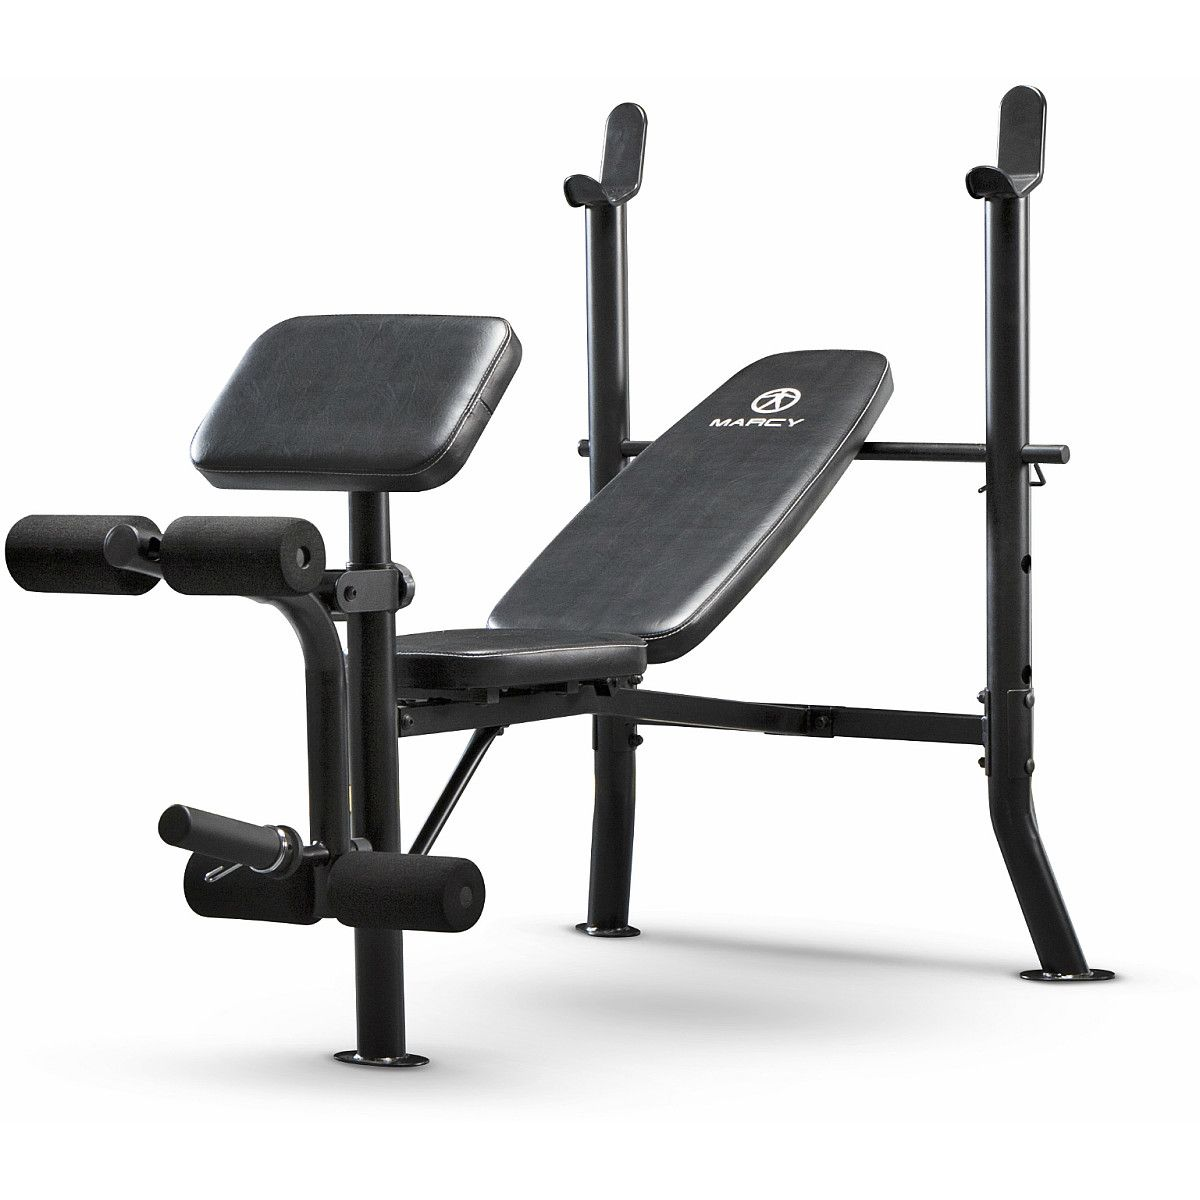 Marcy Standard Bench Weight Benches Bench Workout Adjustable Weight Bench